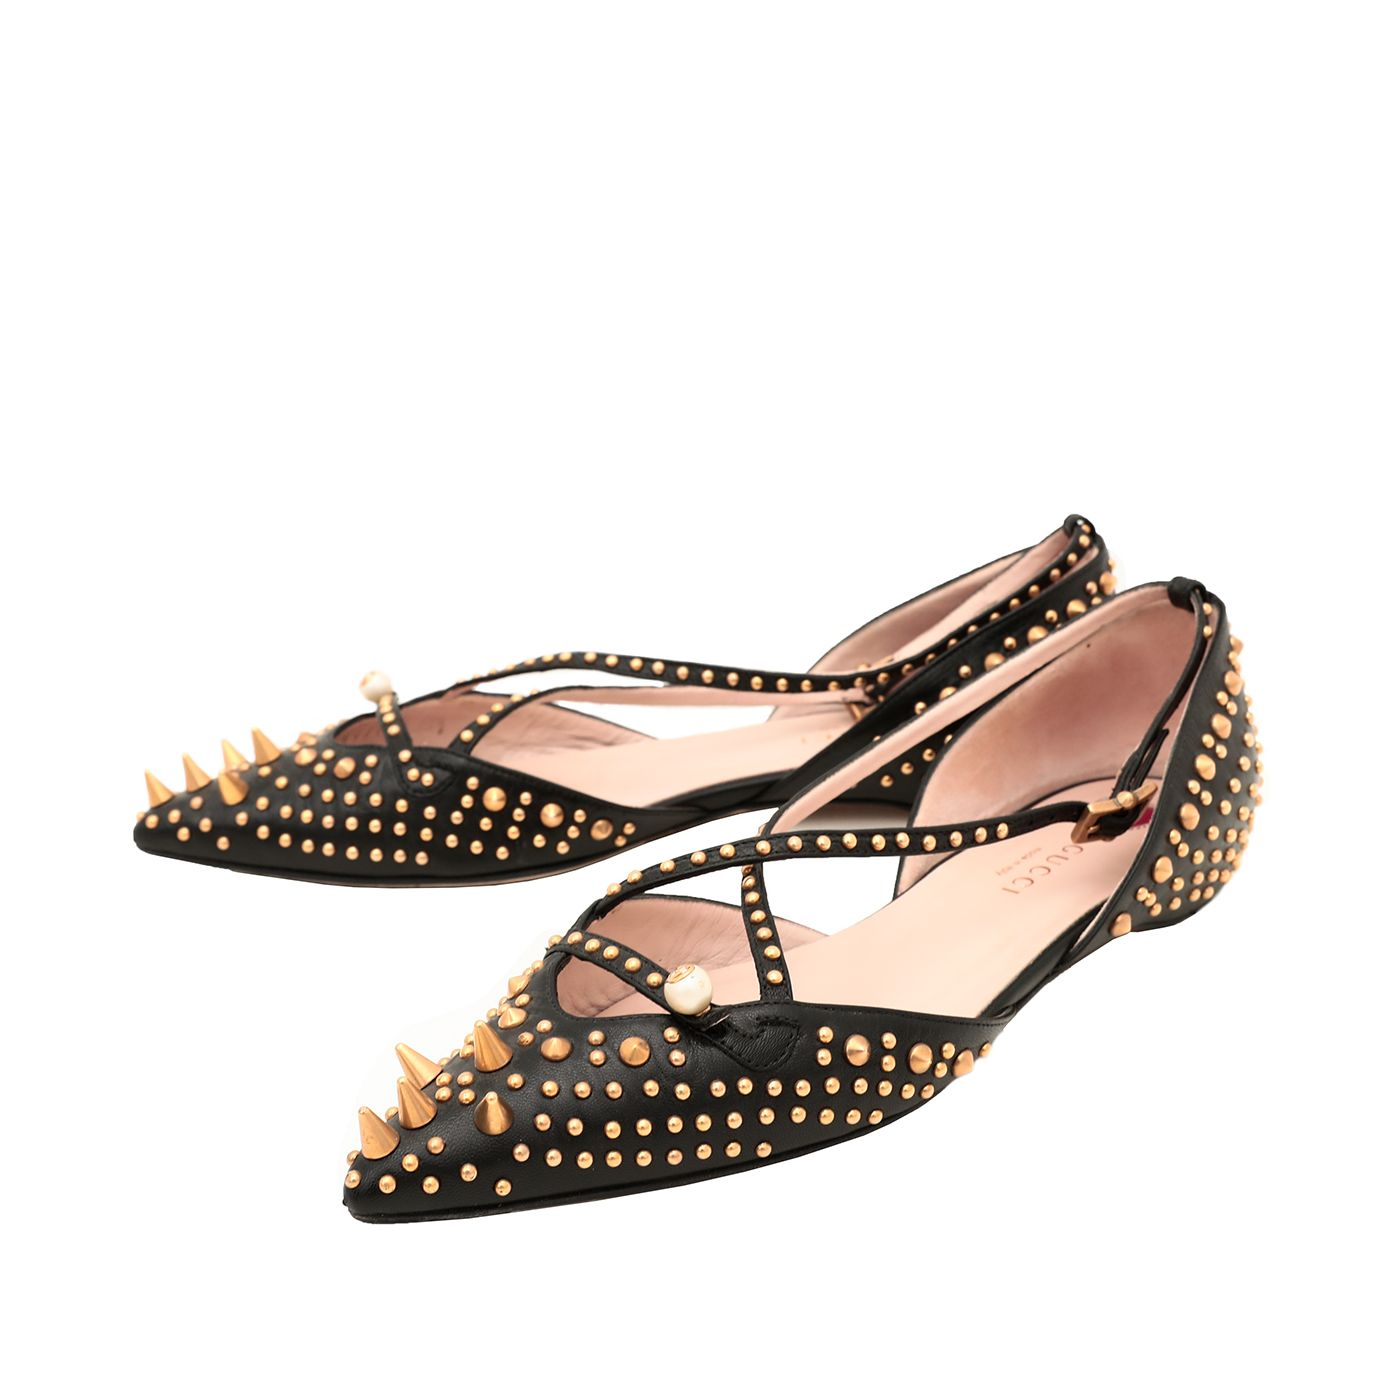 Gucci Black Unia Studded Flats 36.5